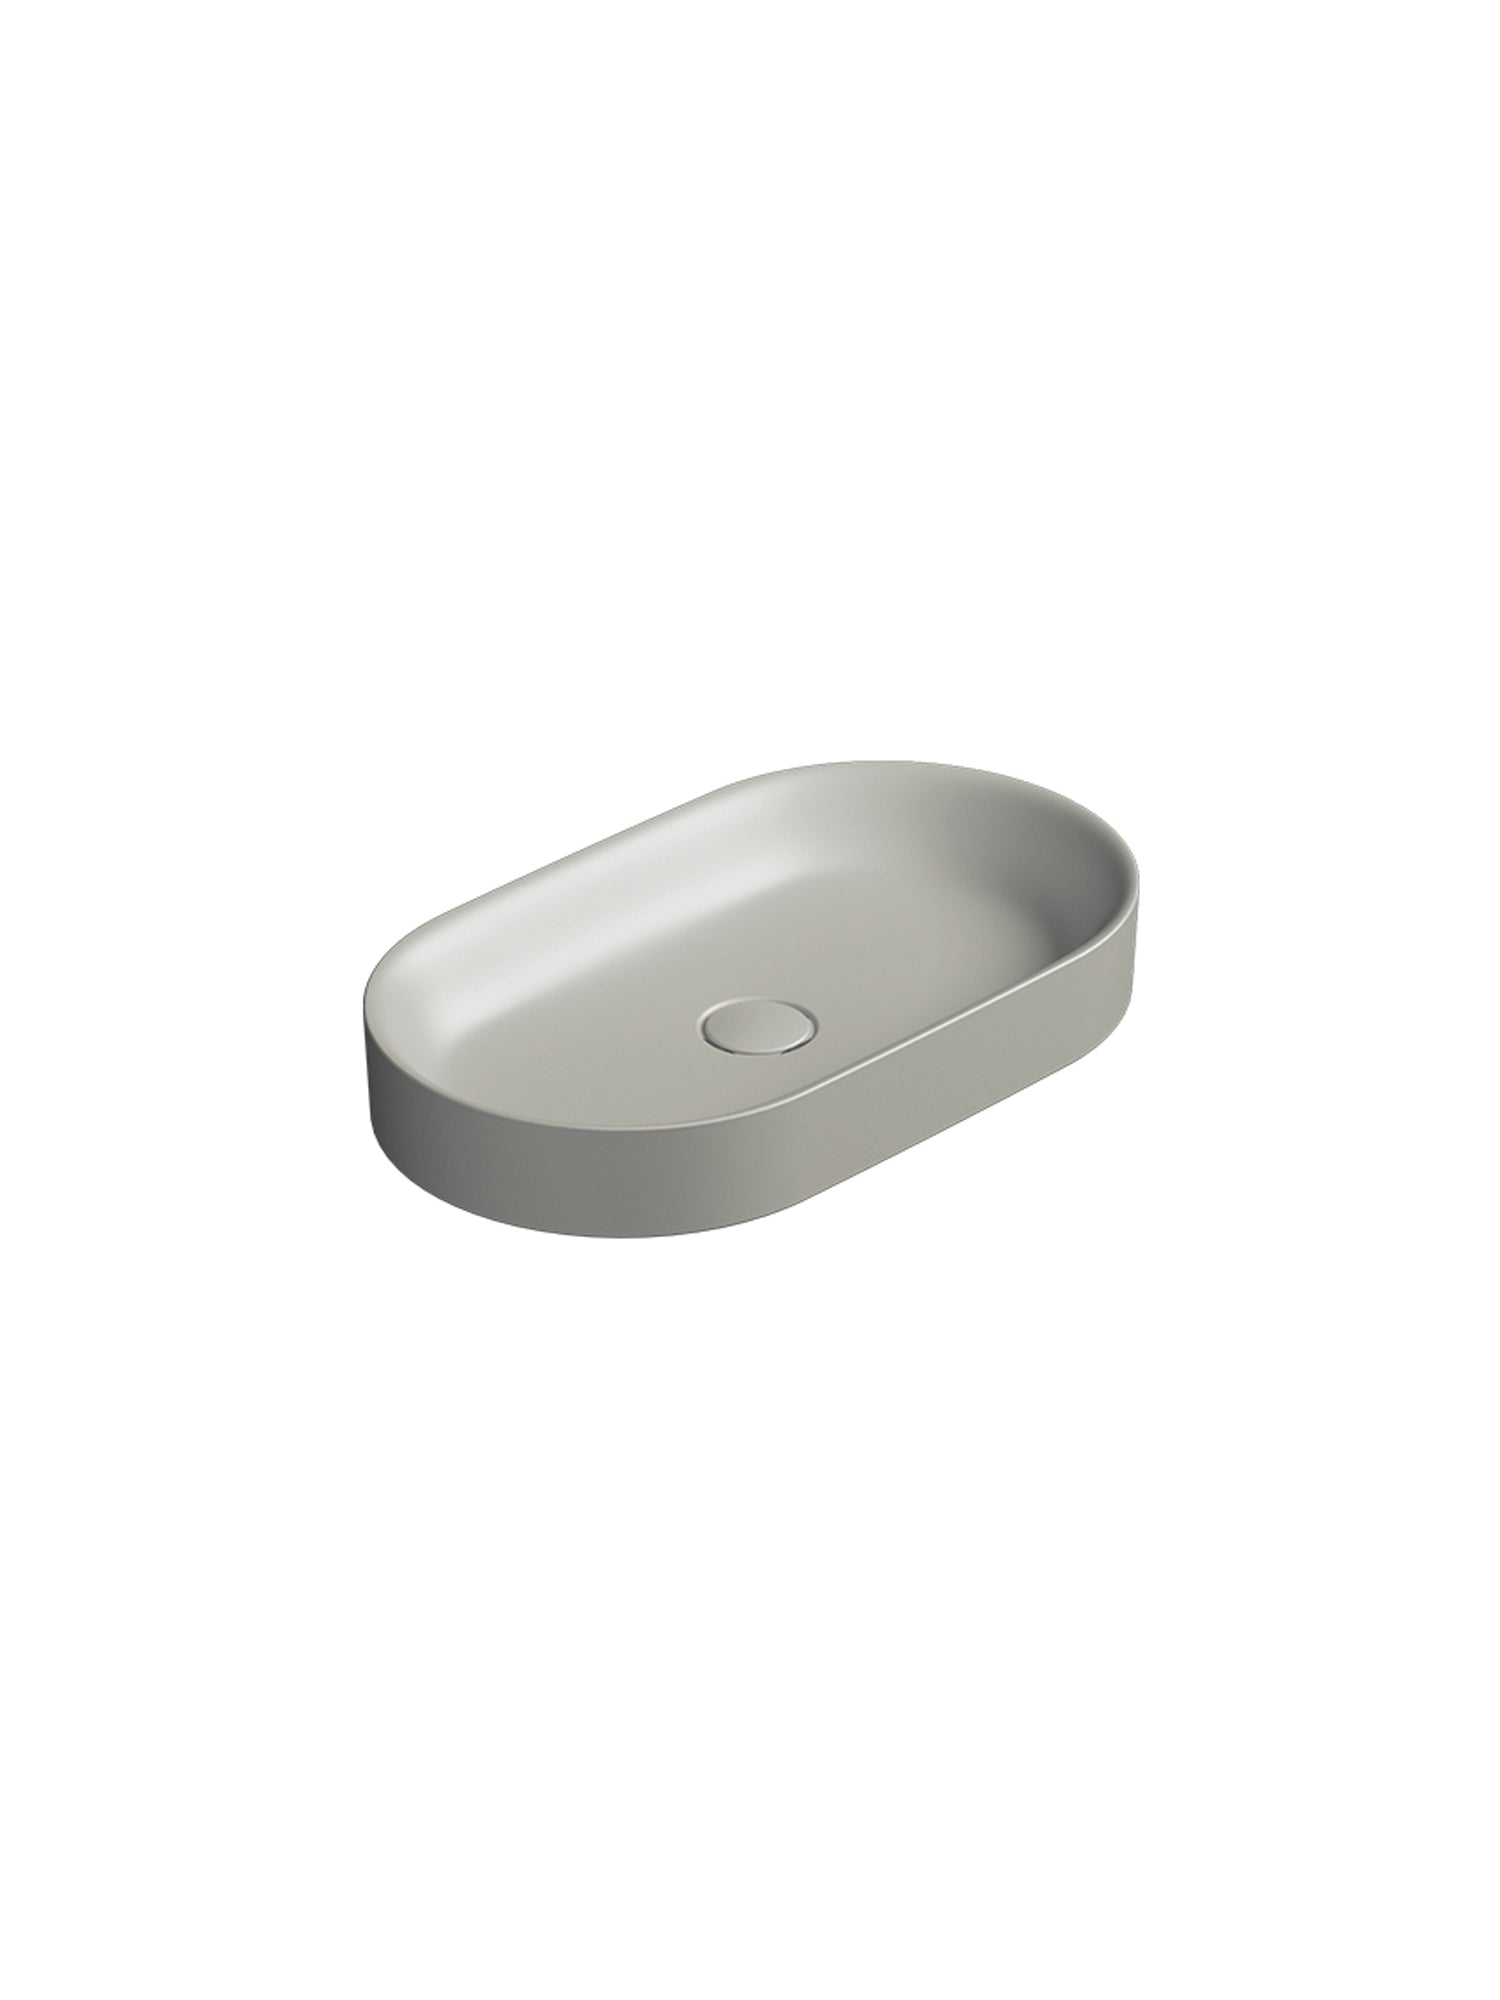 Horizon Countertop Basin #60AHZ (Avail. in Satin Black, Satin Cement)